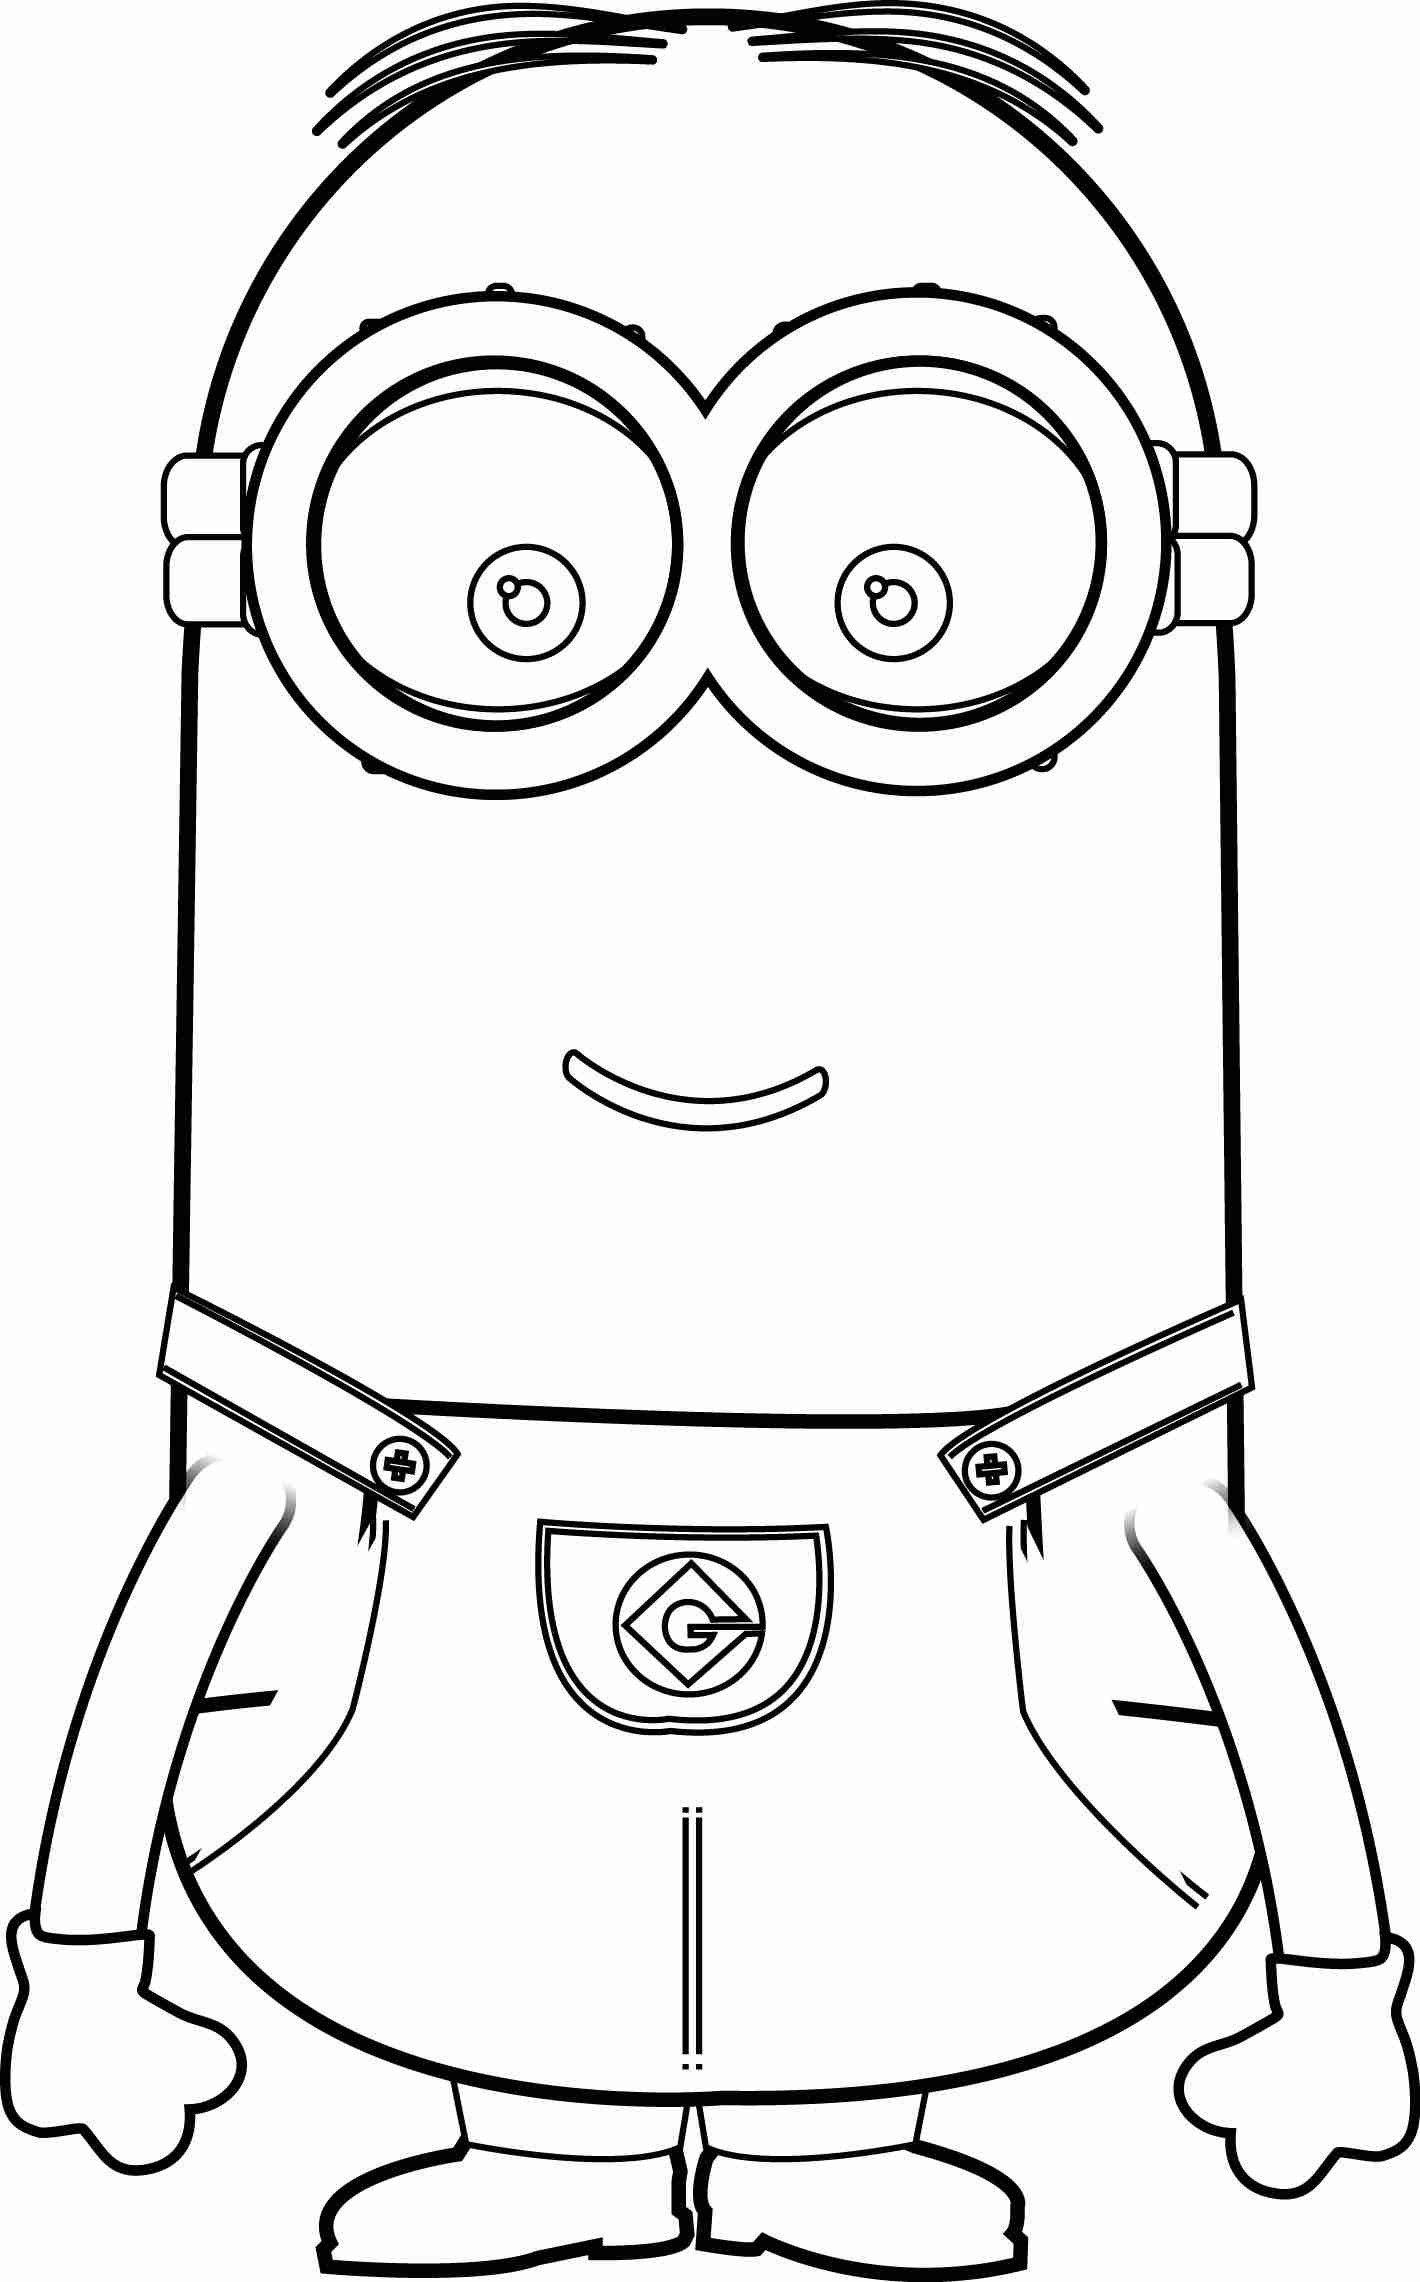 minion kevin coloring pages minions coloring sheet minions kevin perfect coloring page coloring pages minion kevin